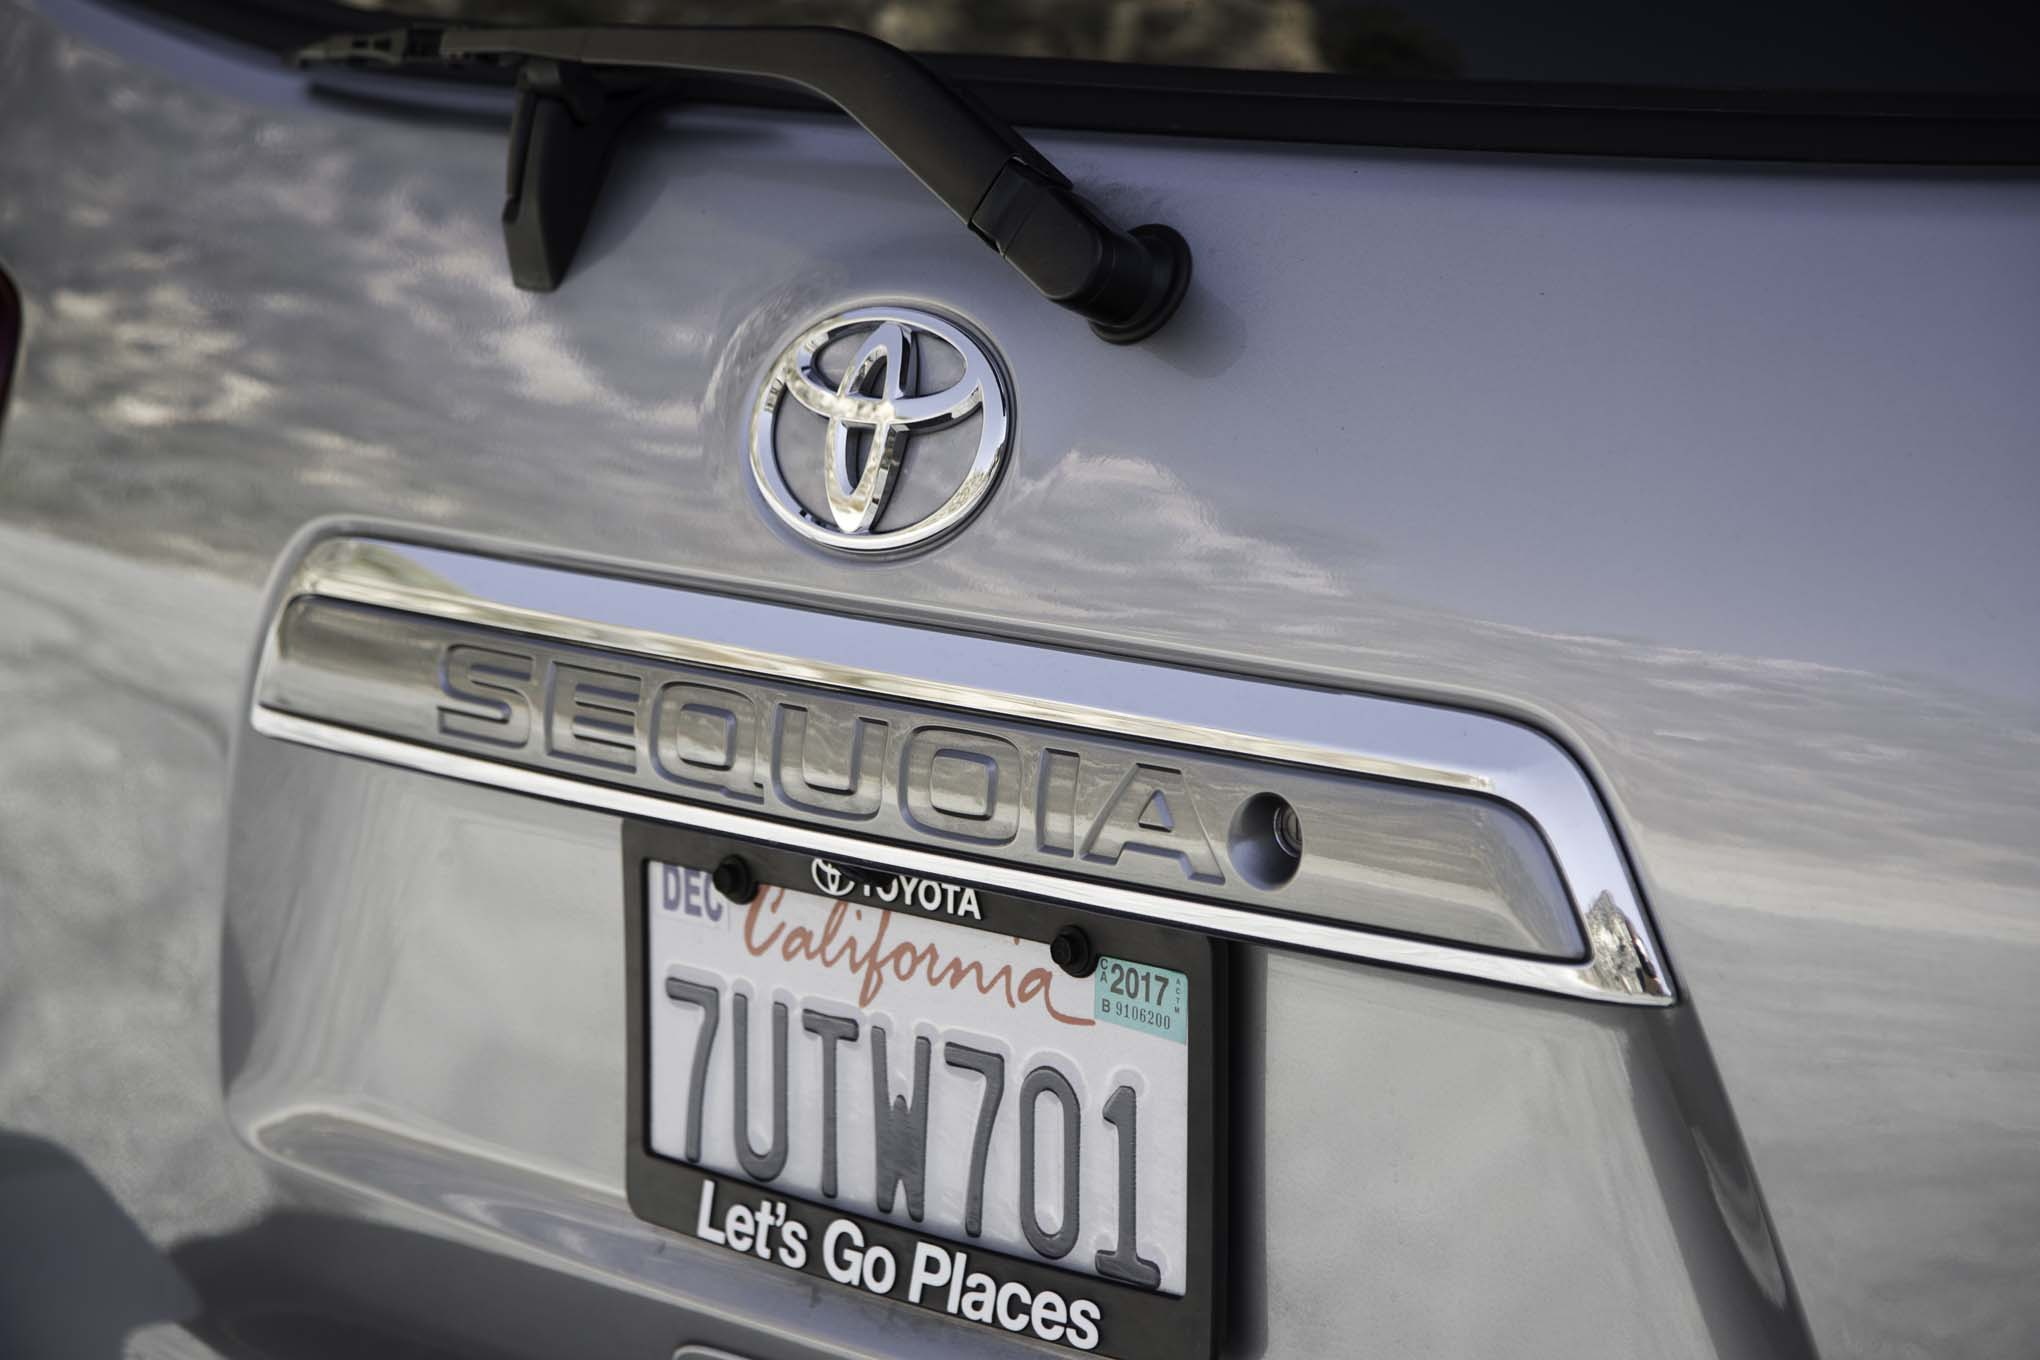 2017 Toyota Sequoia 4×4 Platinum Exterior View Rear Badge (Photo 8 of 26)